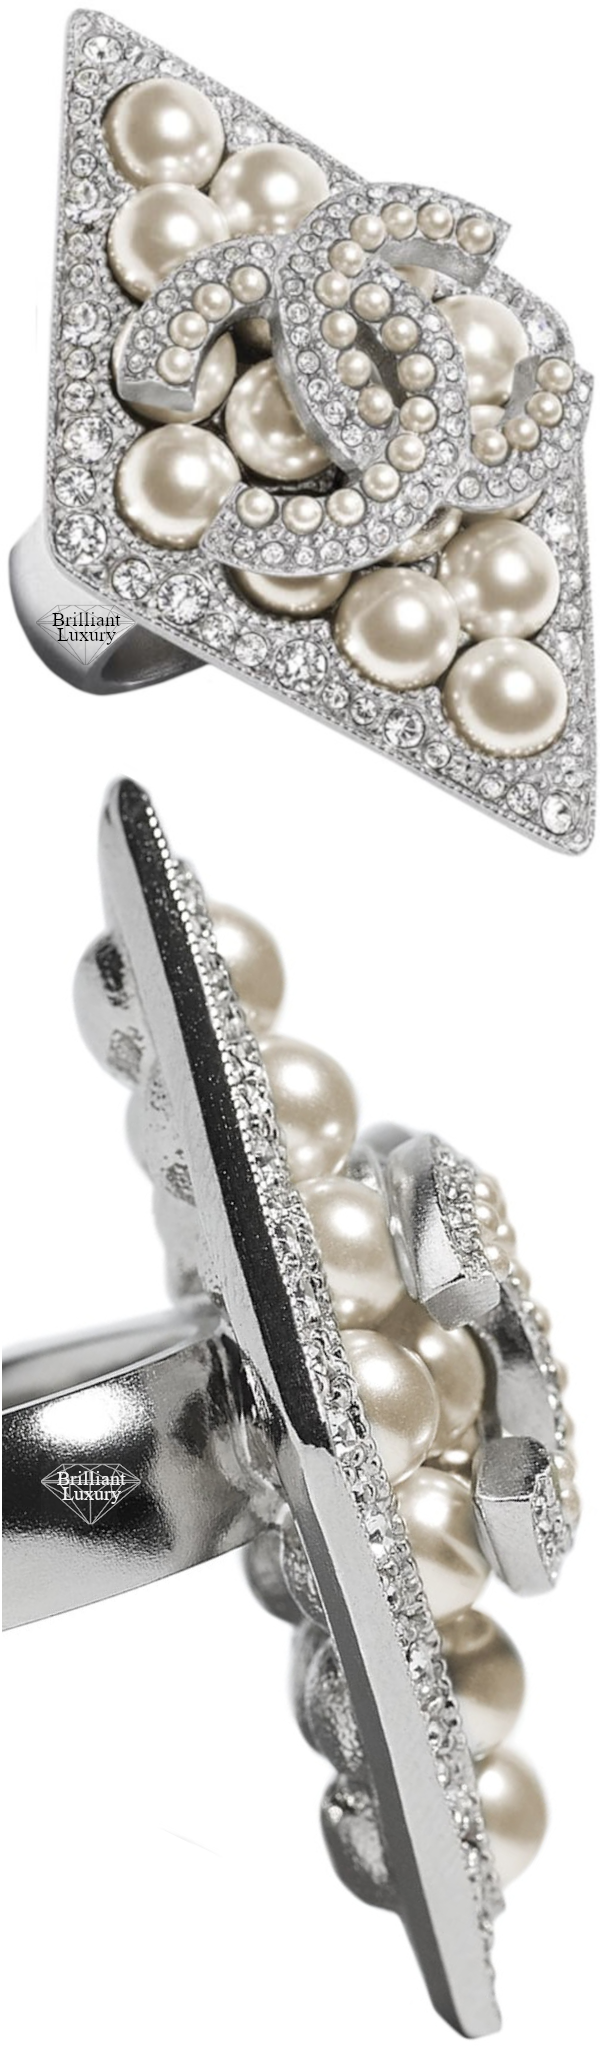 CHANEL Costume Jewelry II Silver Pearl CC Ring #jewelry